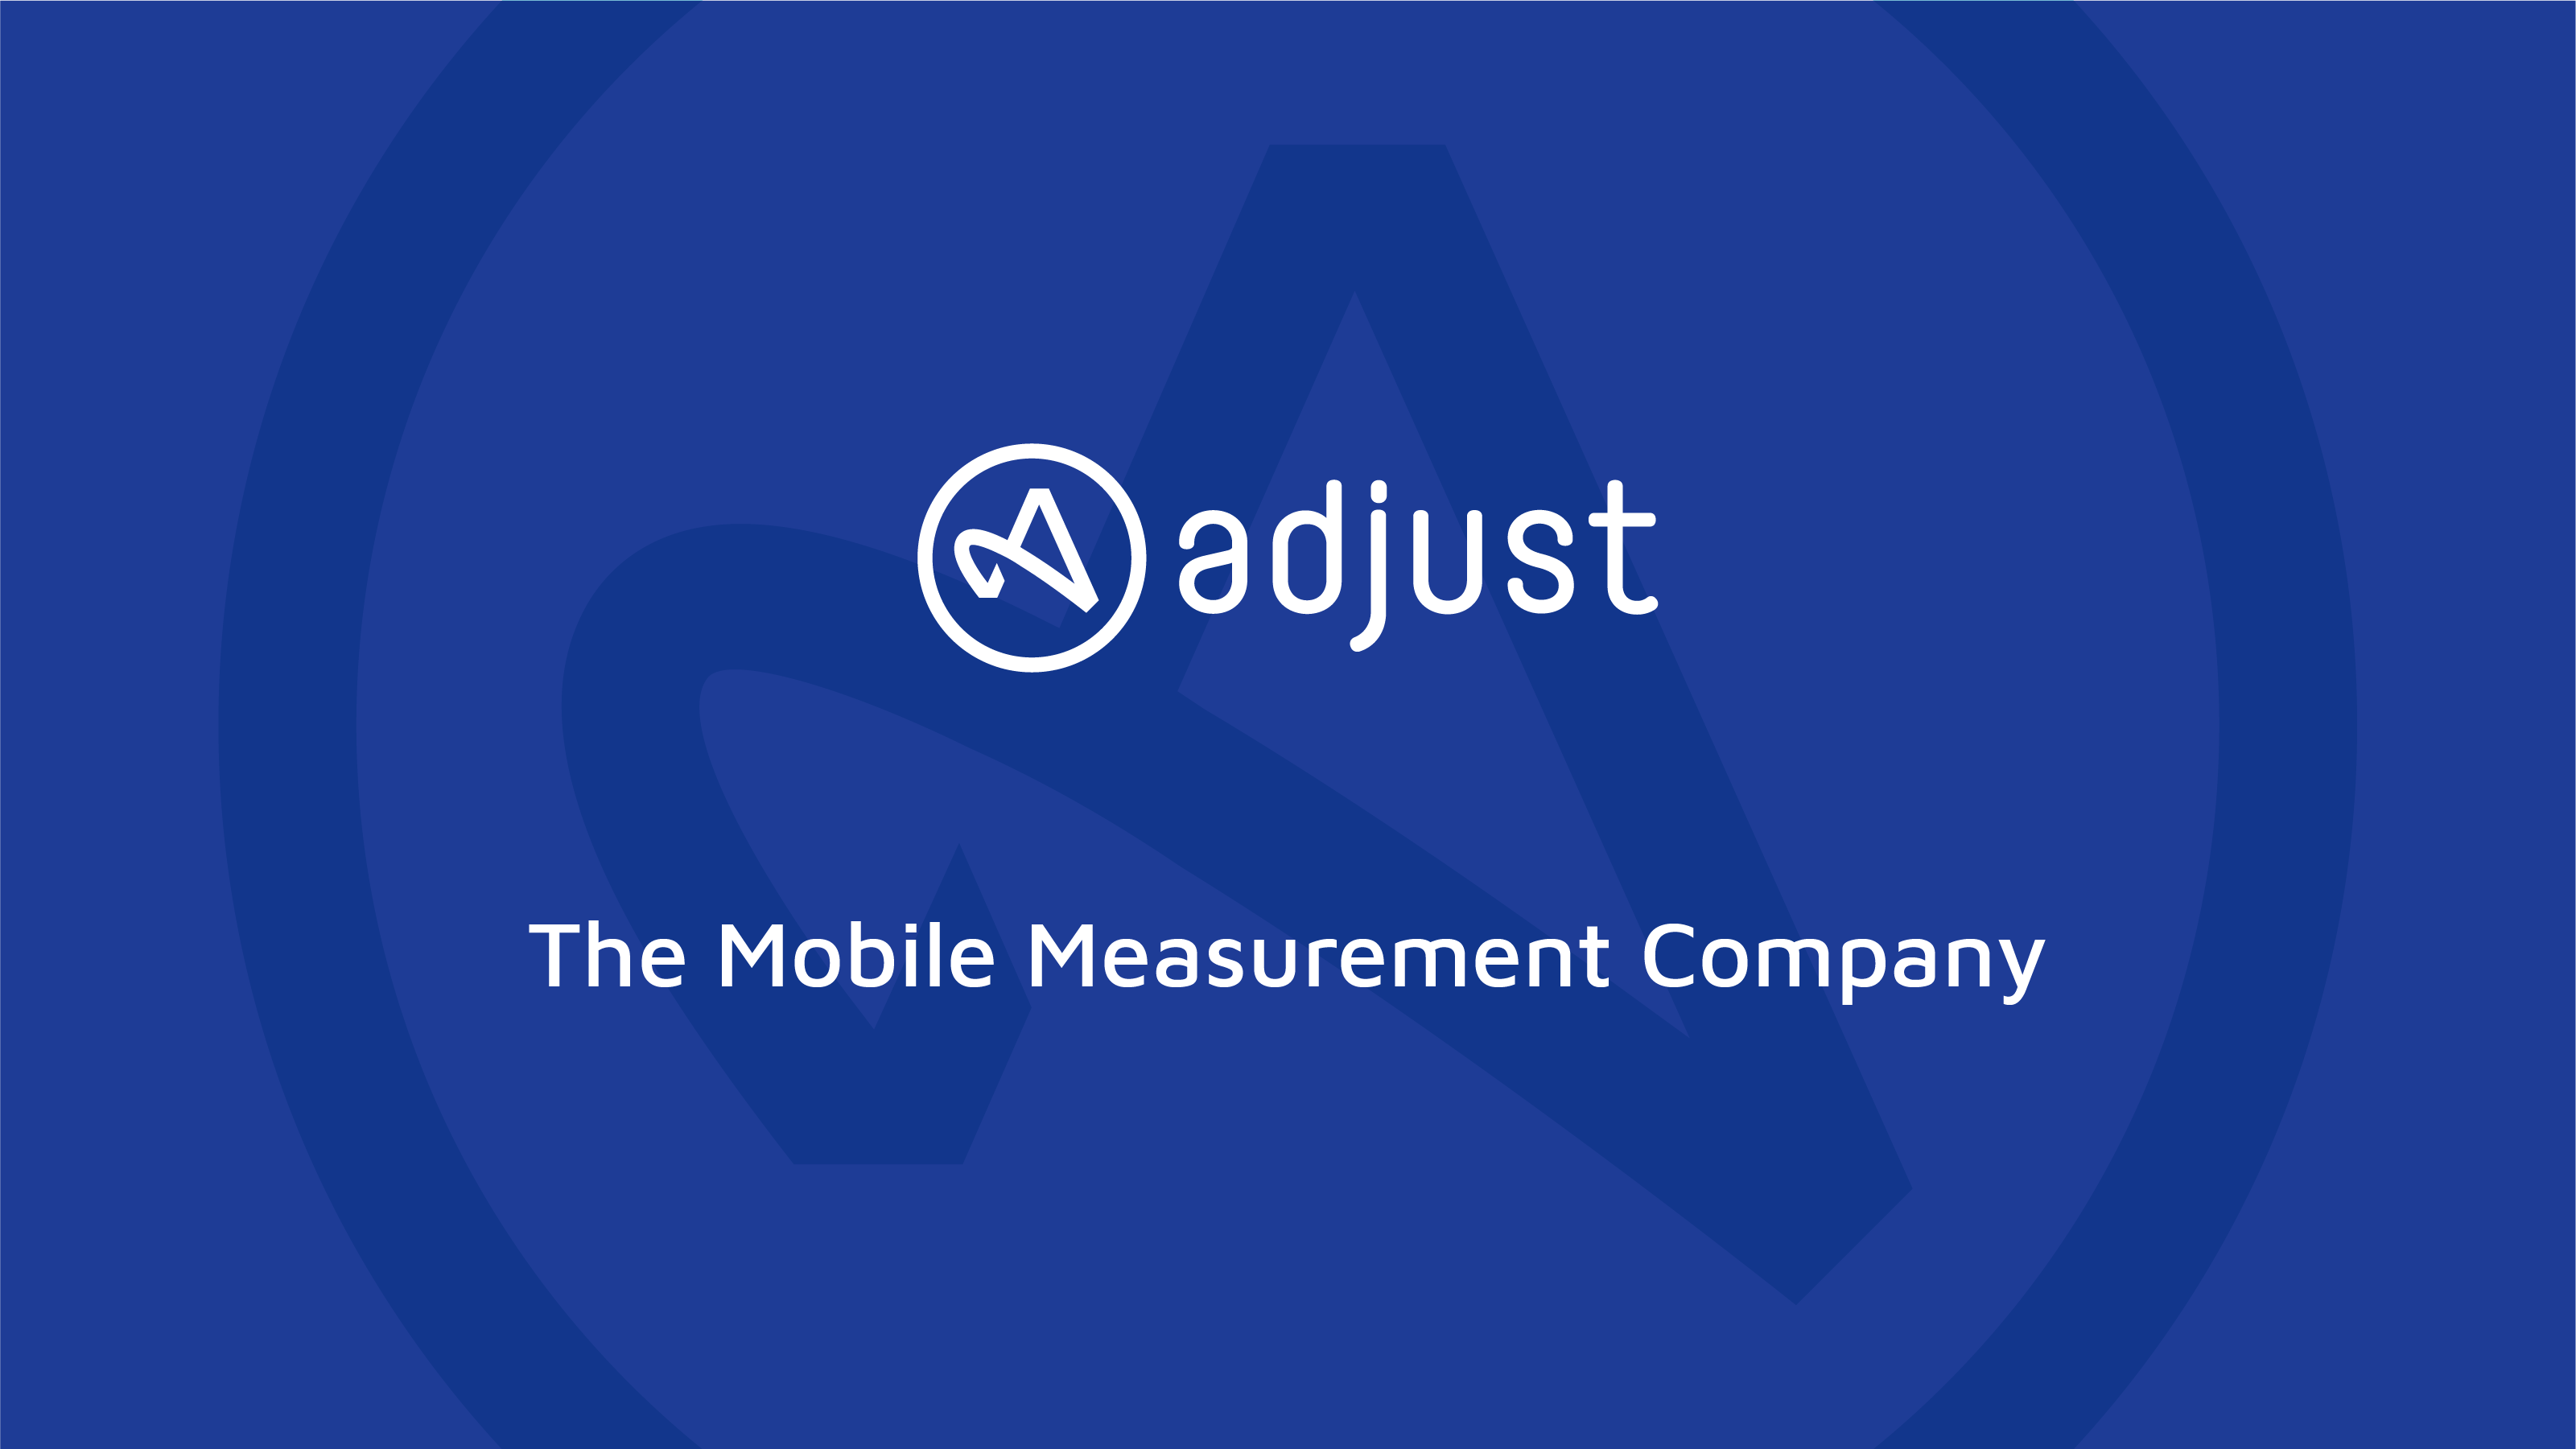 The Mobile Measurement Company.